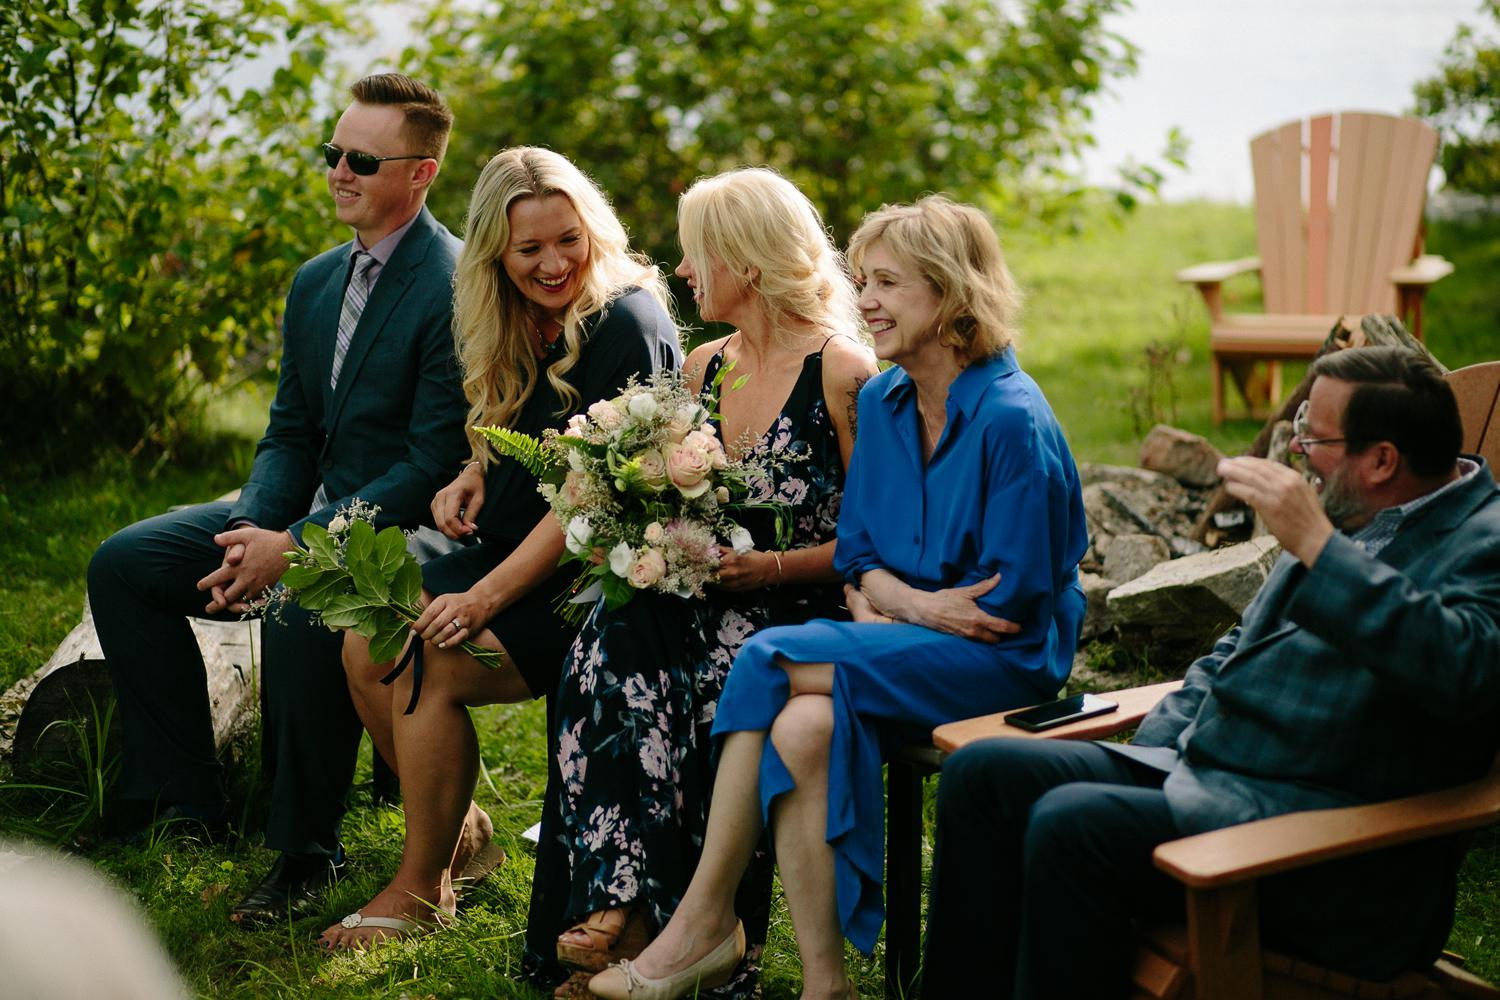 kerry ford photography - small intimate backyard rideau lake island wedding perth ontario-028.jpg